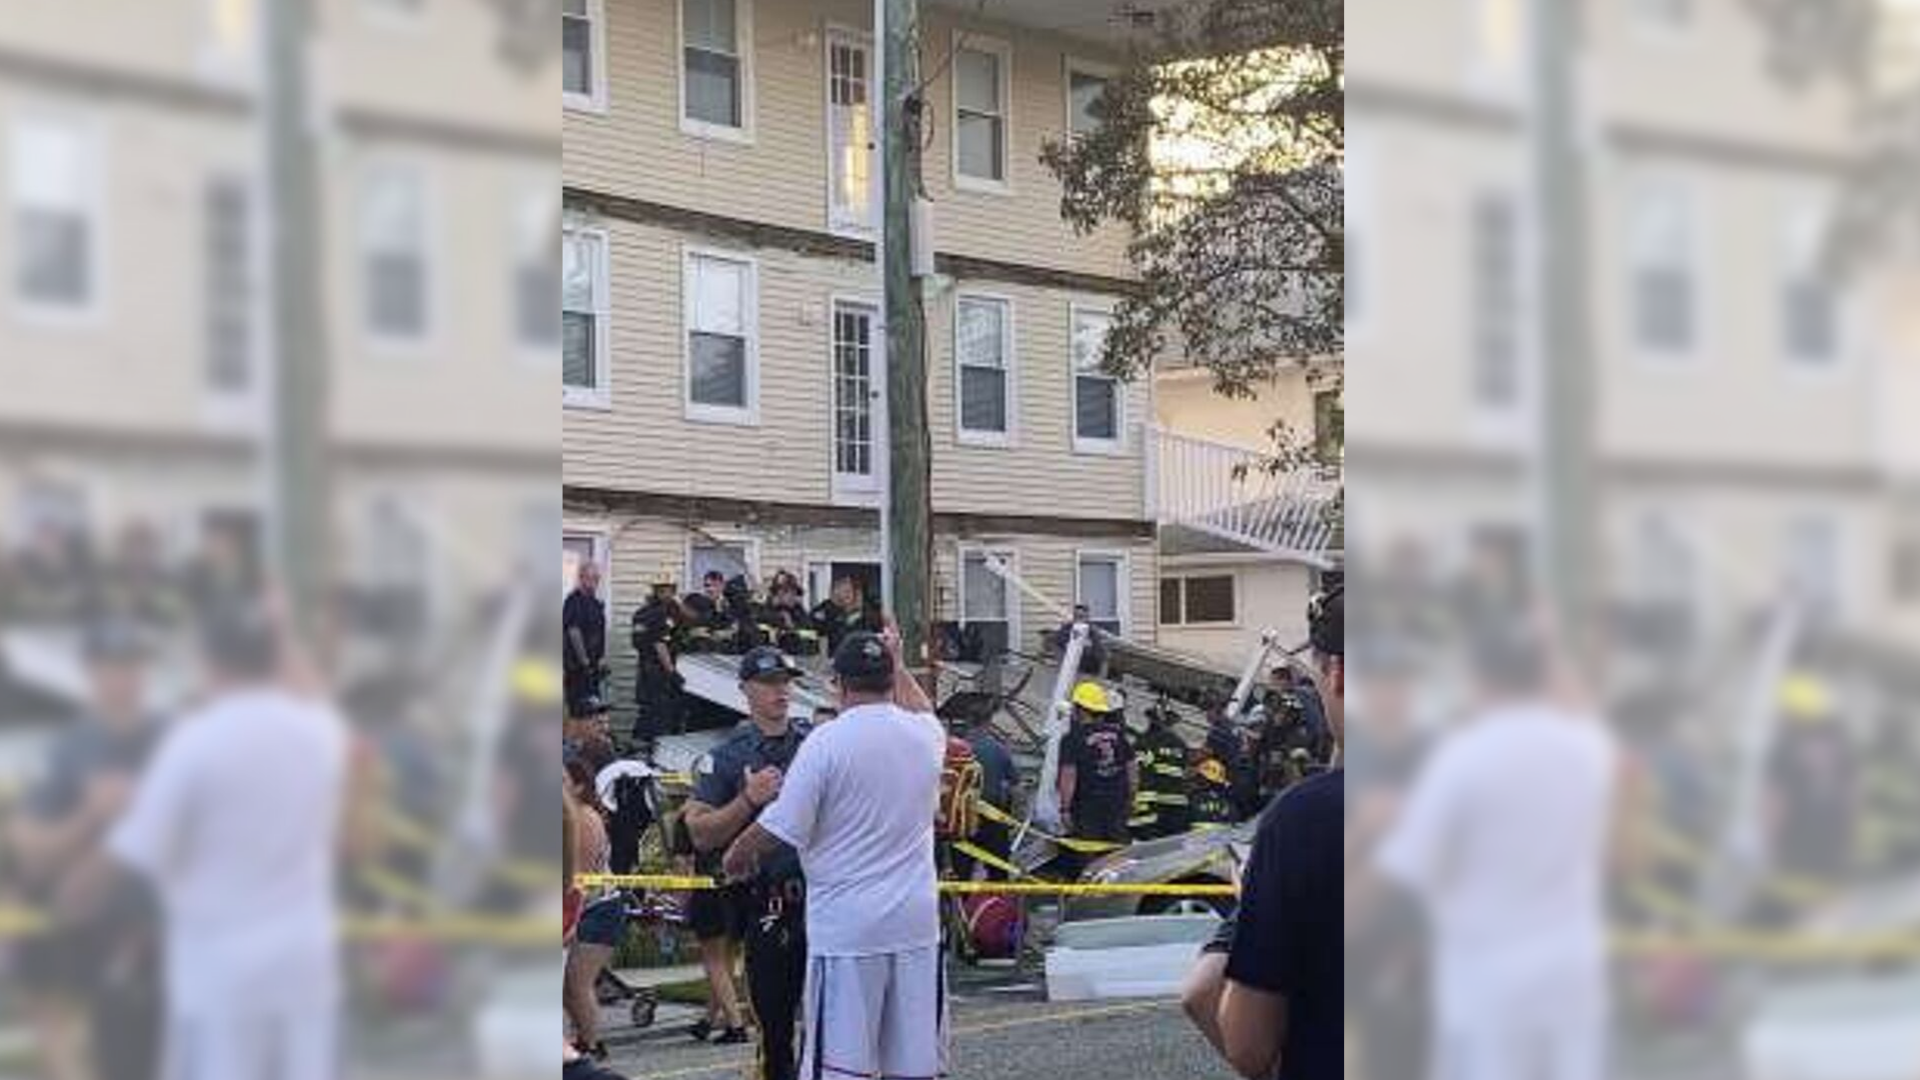 Decks Collapse During Jersey Firefighter event; At Least 22 Hurt